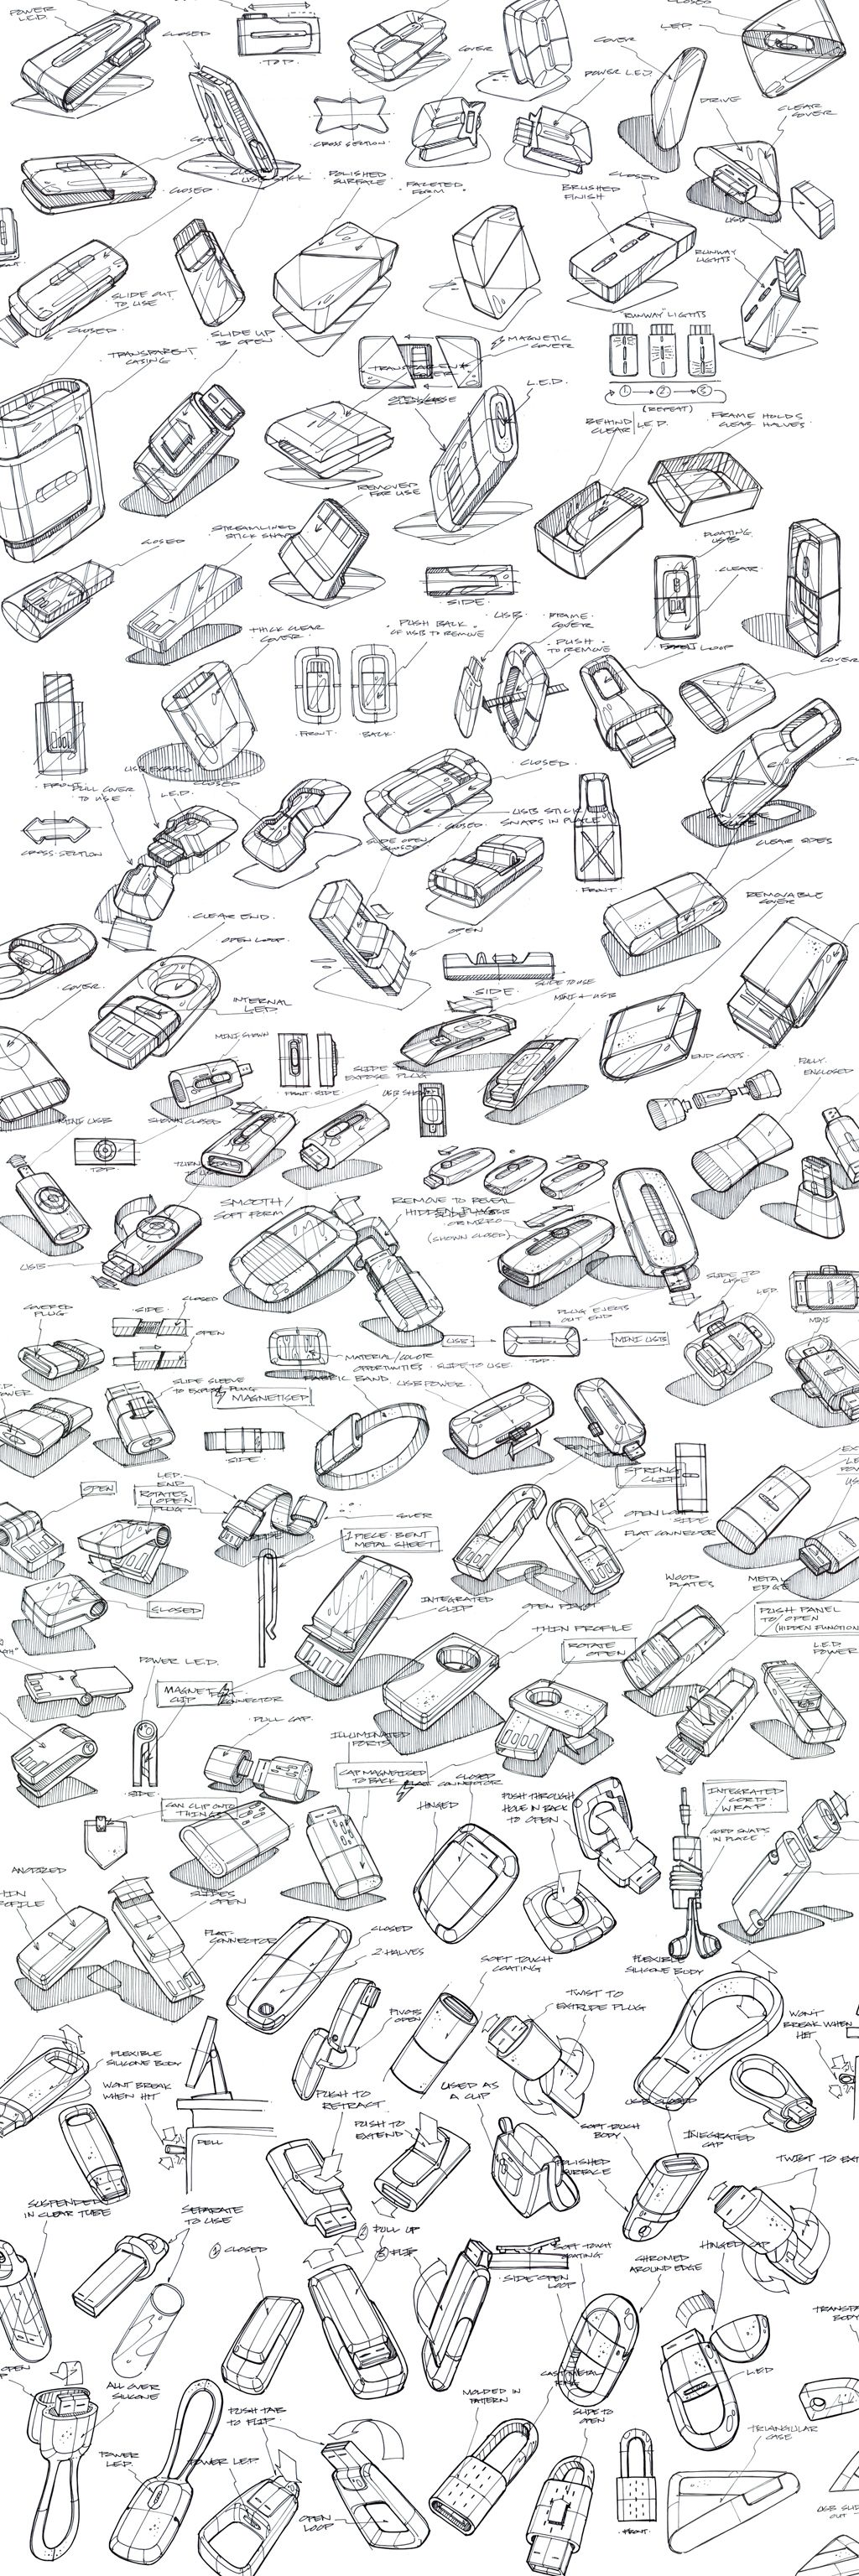 Product Sketching Ideation On Behance